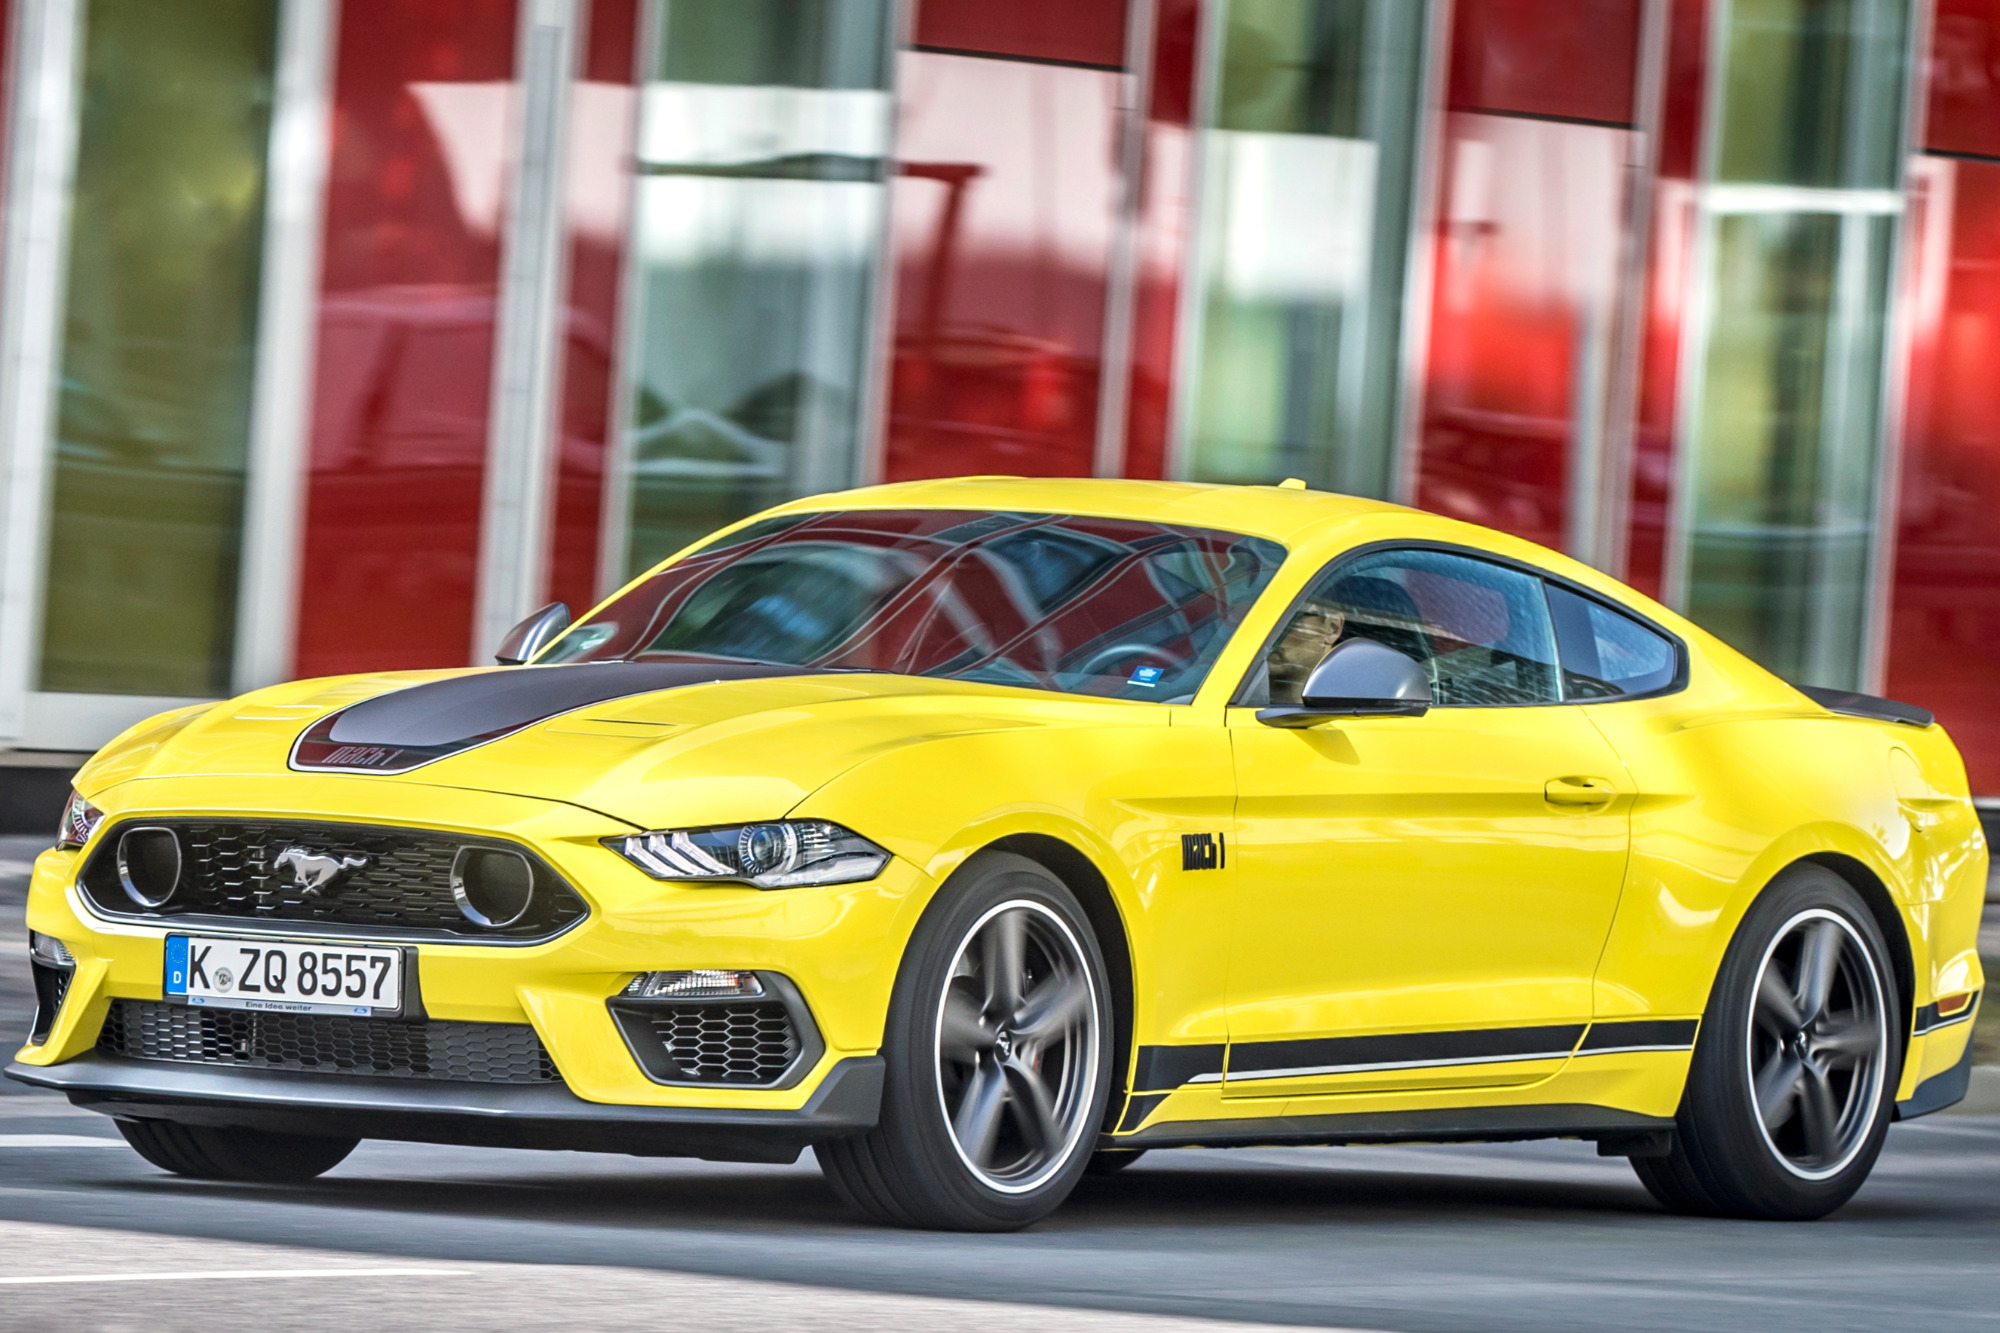 Ford Mustang Mach 1 2021 Amarelo Frente